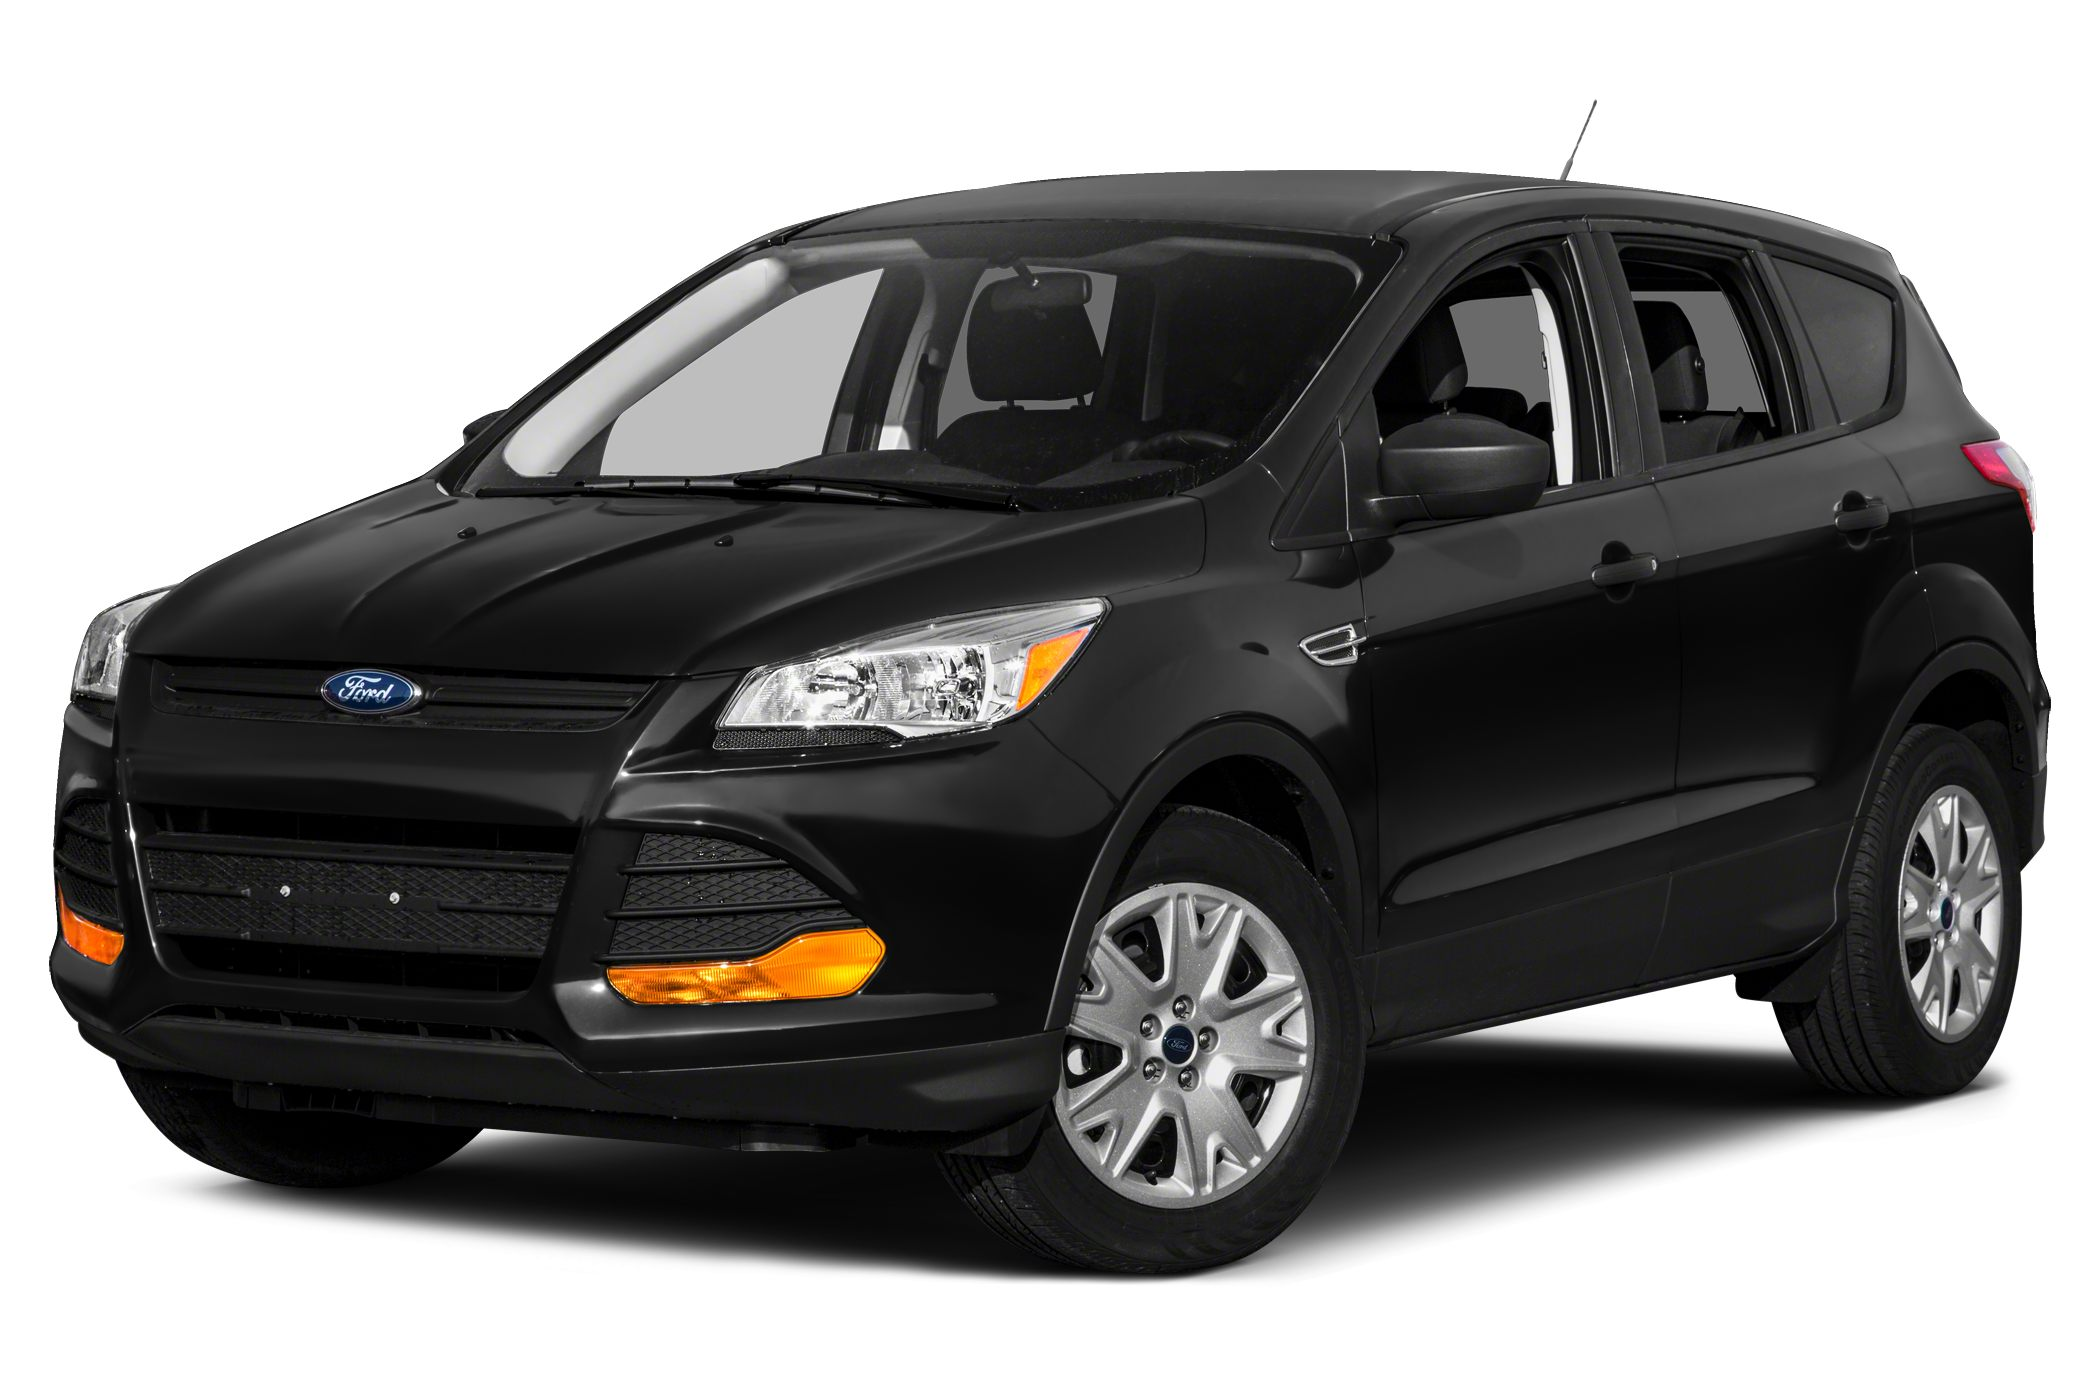 2013 Ford Escape SE  WHEN IT COMES TO EXCELLENCE IN USED CAR SALES YOU KNOW YOURE AT STAR AUT